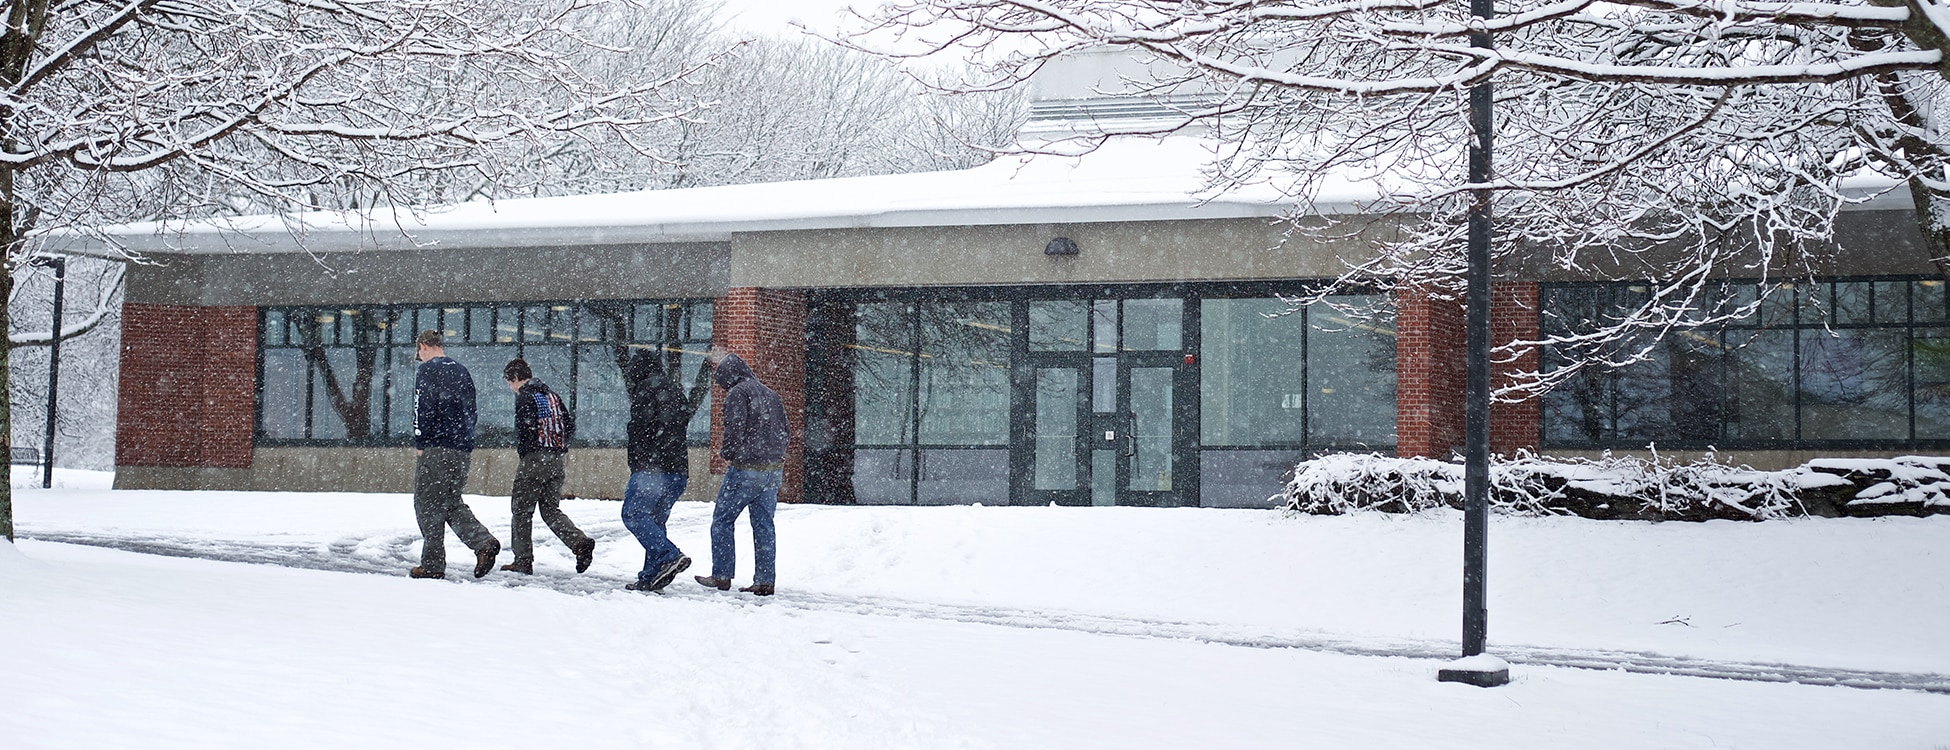 winter, snow, Hartness Library, students, walking, Randolph Center campus